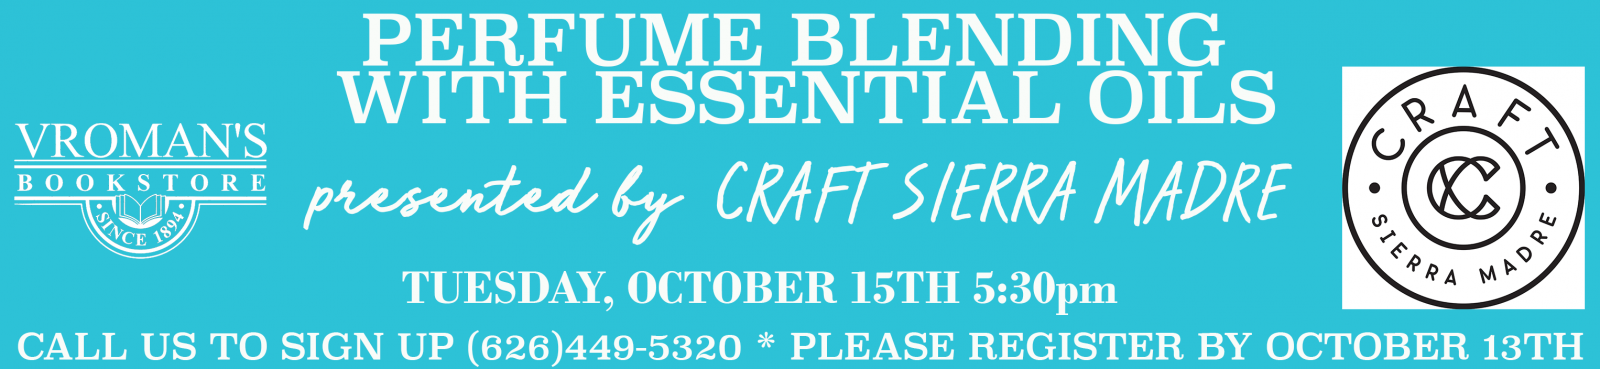 Perfume Blending with Essential Oils Workshop Tuesday October 15 at 5:30pm